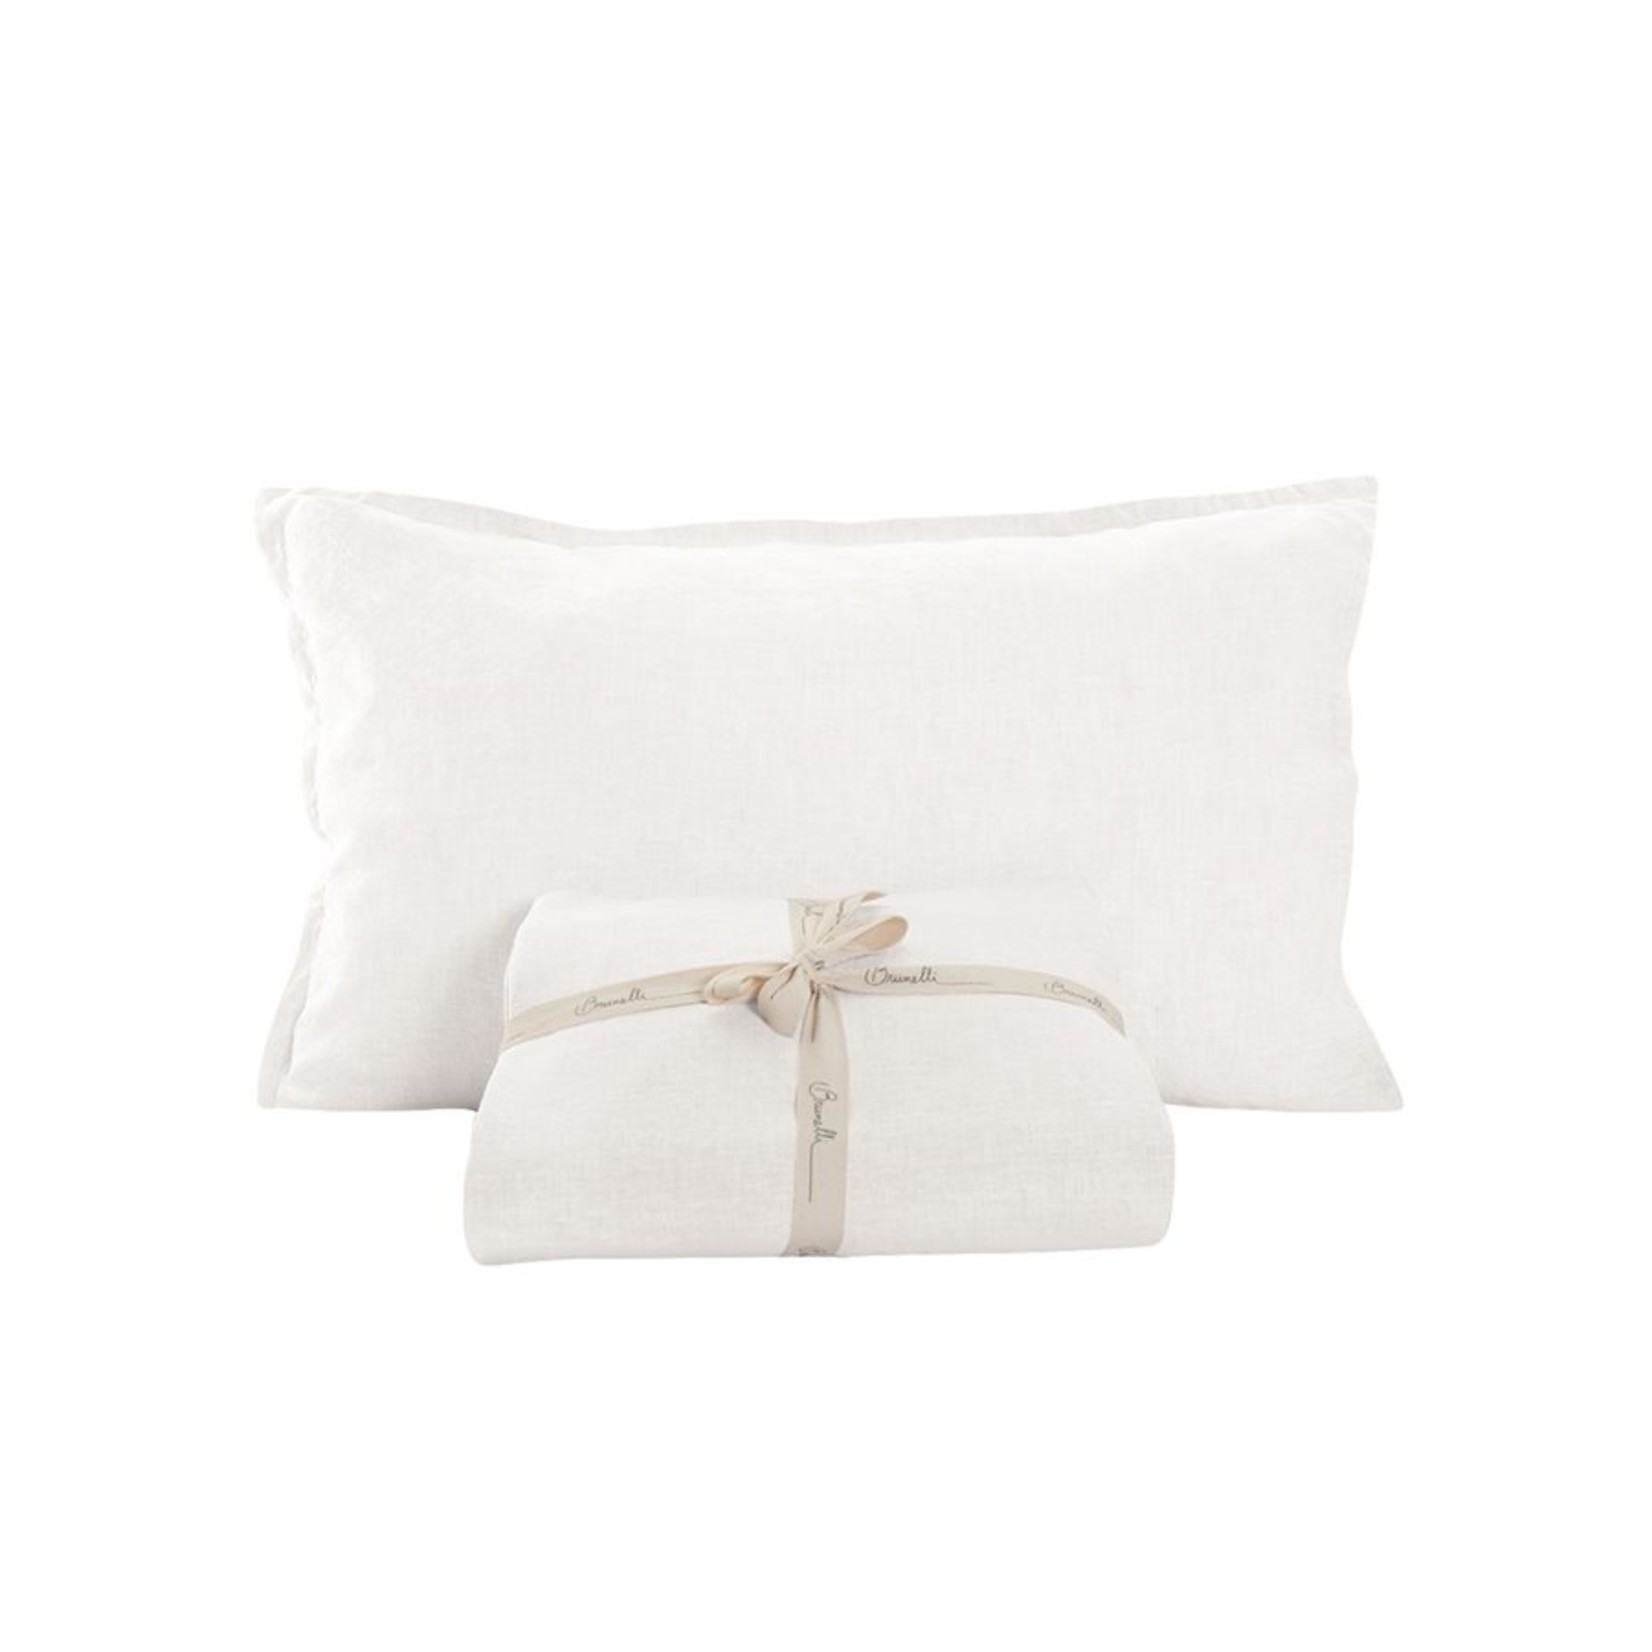 Brunelli Linen White Pillow Sham